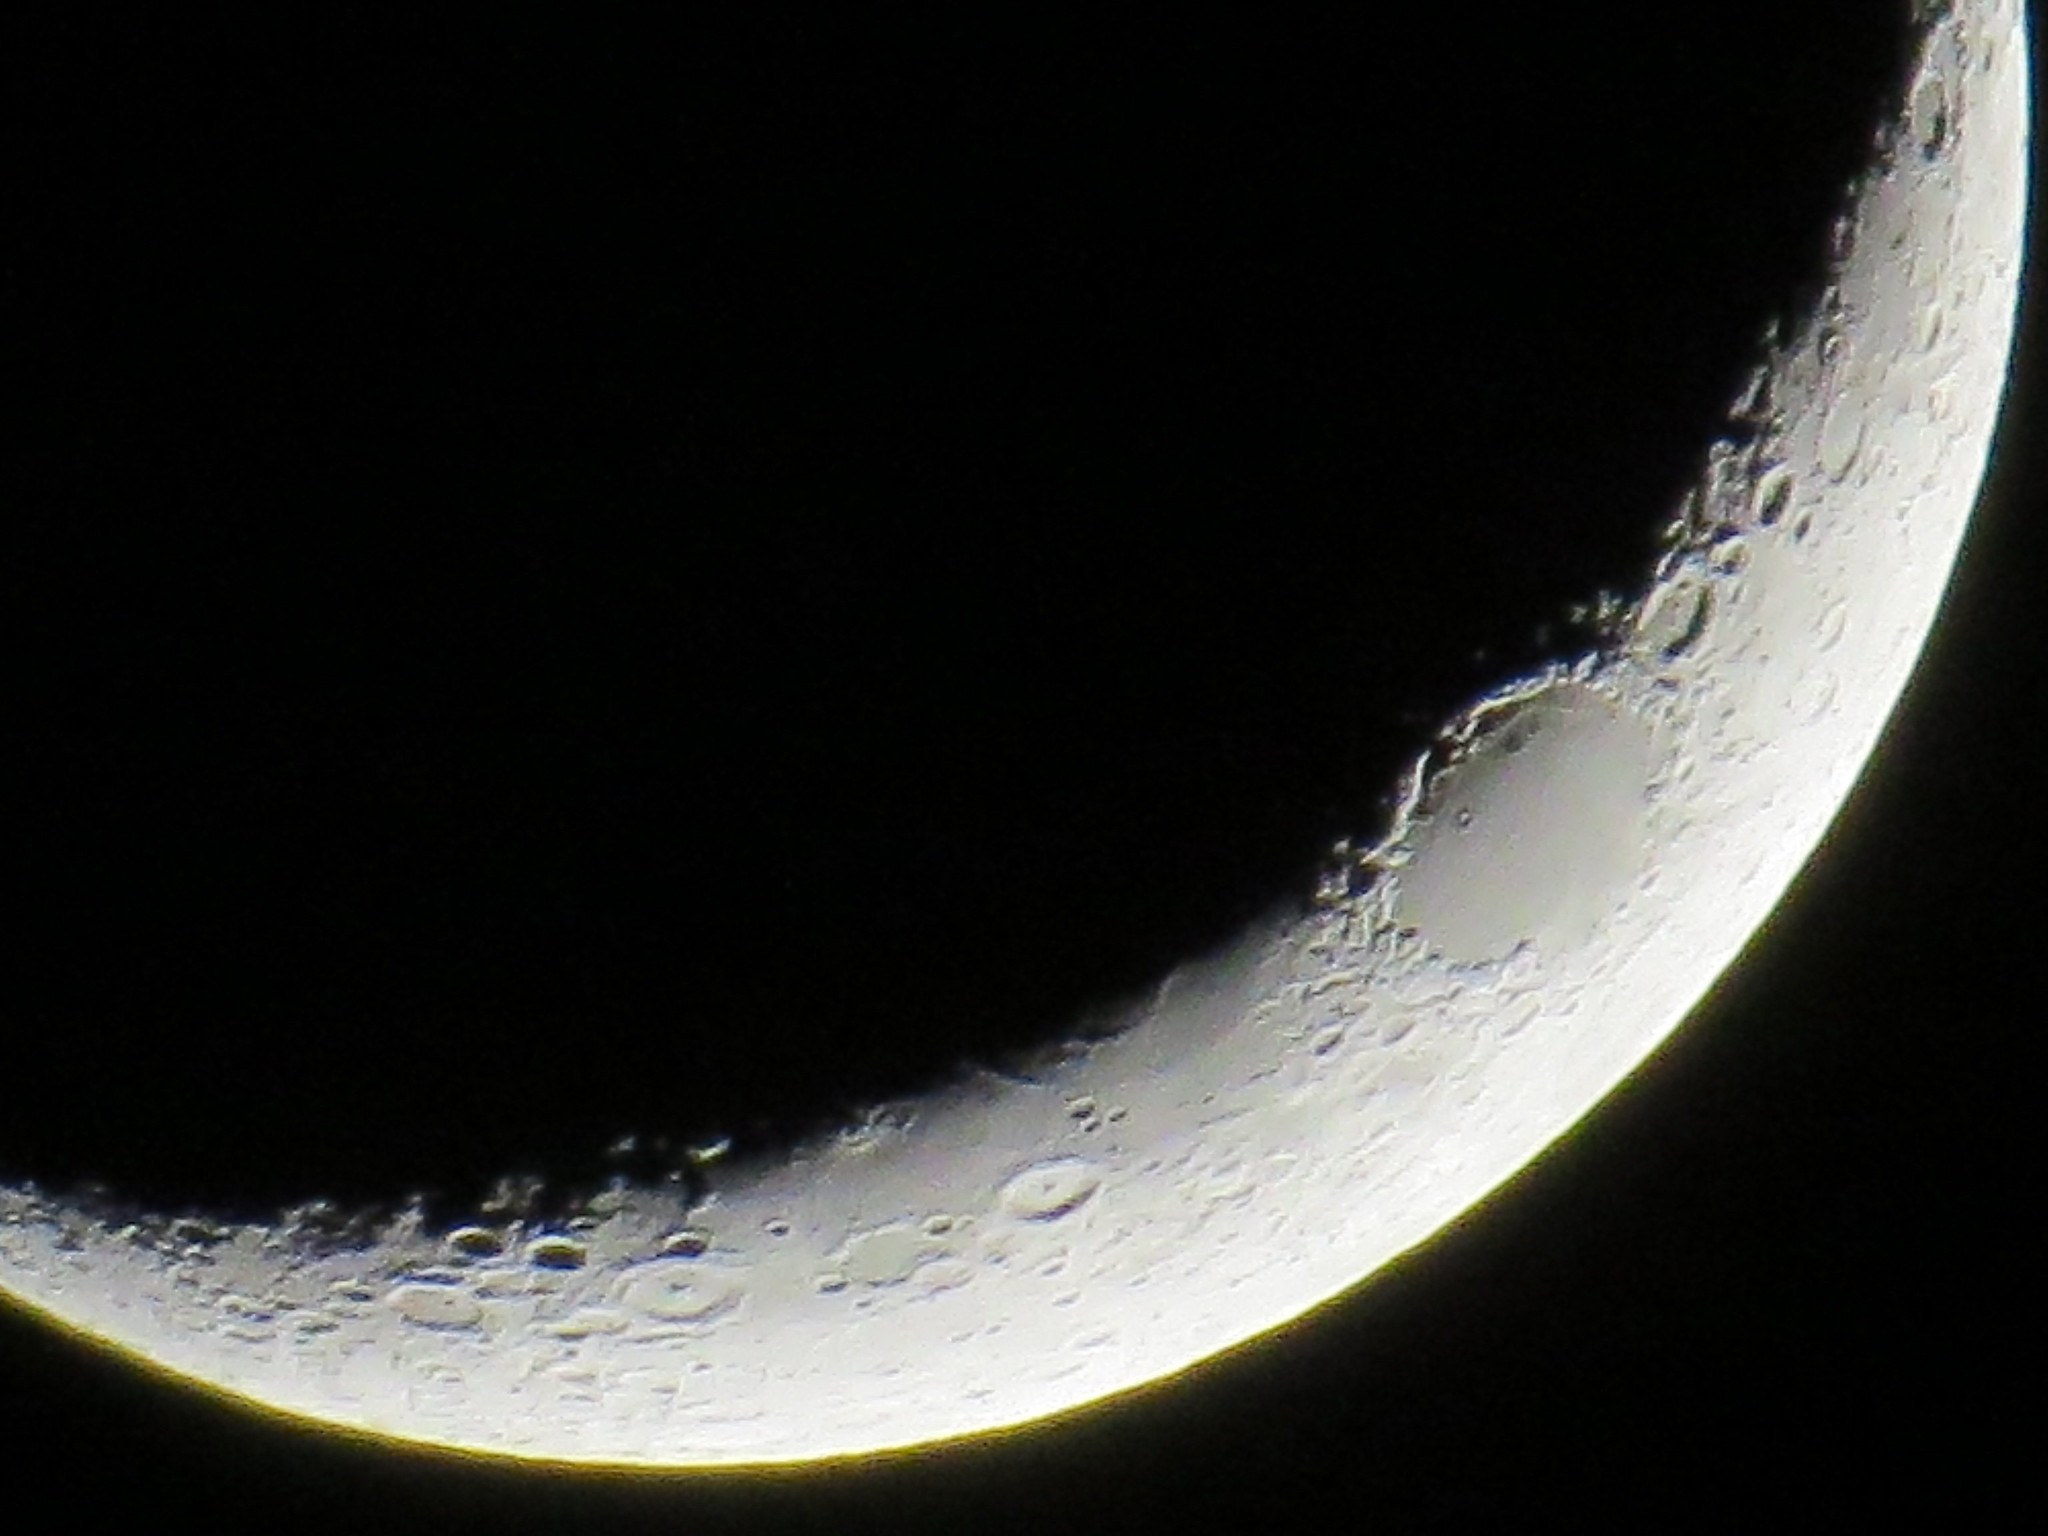 Moon Shot Feb. 21 2015